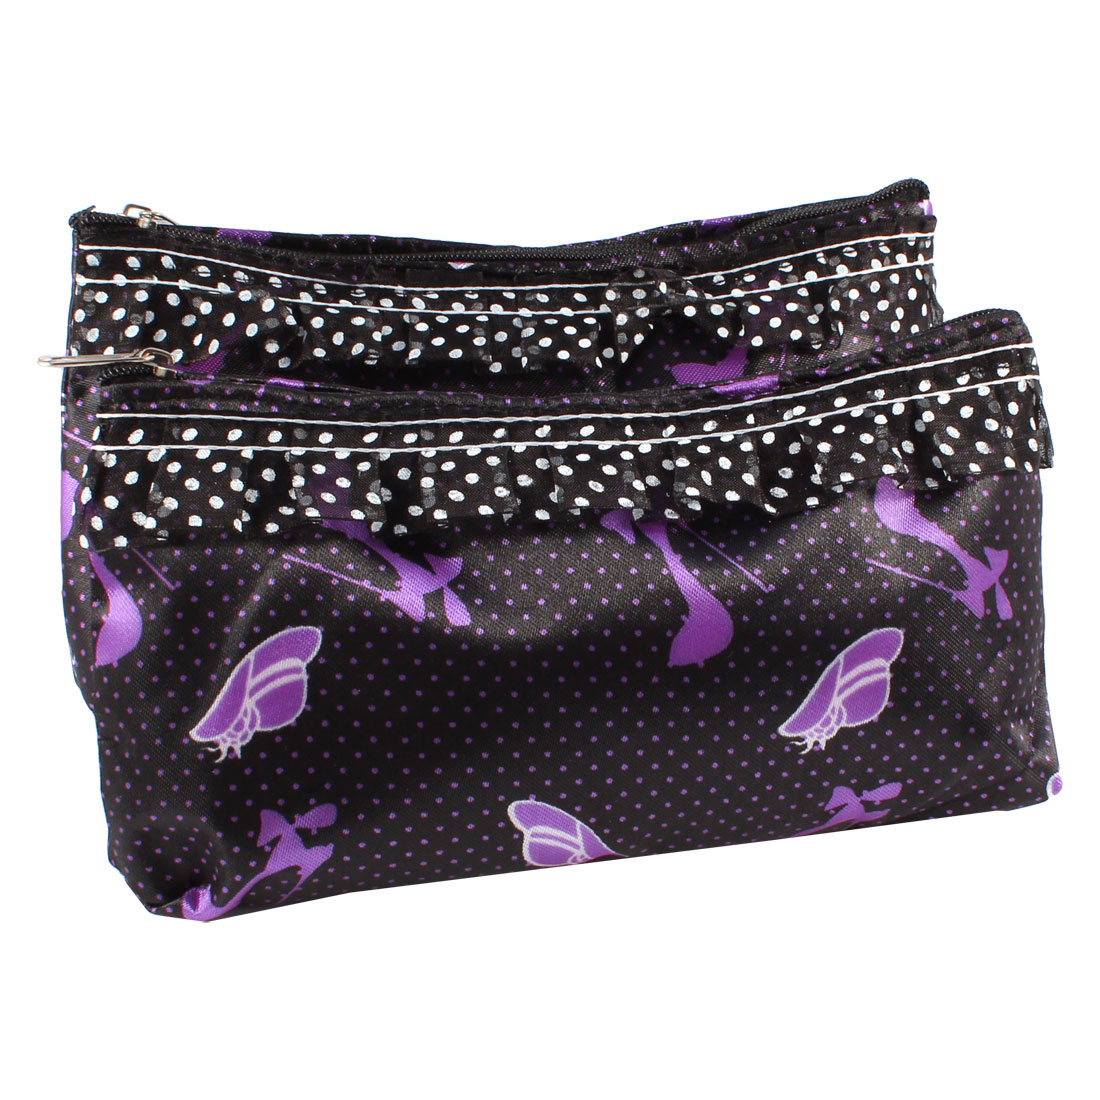 Lady High Hell Shoes Print Zip Up Cosmetic Holder Pouch Bag Purple Black 2 Pcs